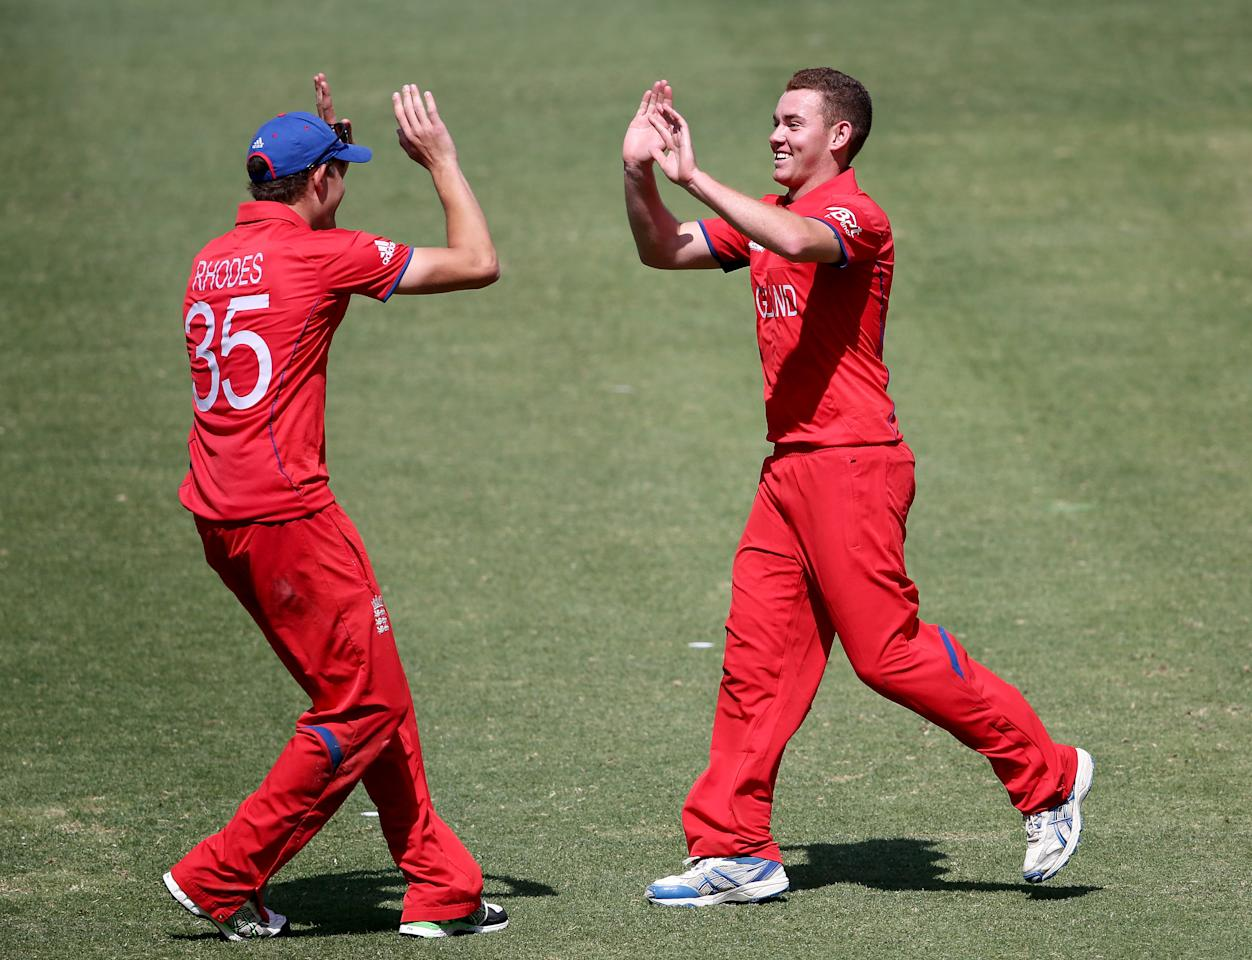 DUBAI, UNITED ARAB EMIRATES - FEBRUARY 22:  Ryan Higginns of England celebrates with William Rhodes during the ICC U19 Cricket World Cup 2014 Quarter Final match between England and India at the Dubai Sports City Cricket Stadium on February 22, 2014 in Dubai, United Arab Emirates.  (Photo by Francois Nel - IDI/IDI via Getty Images)